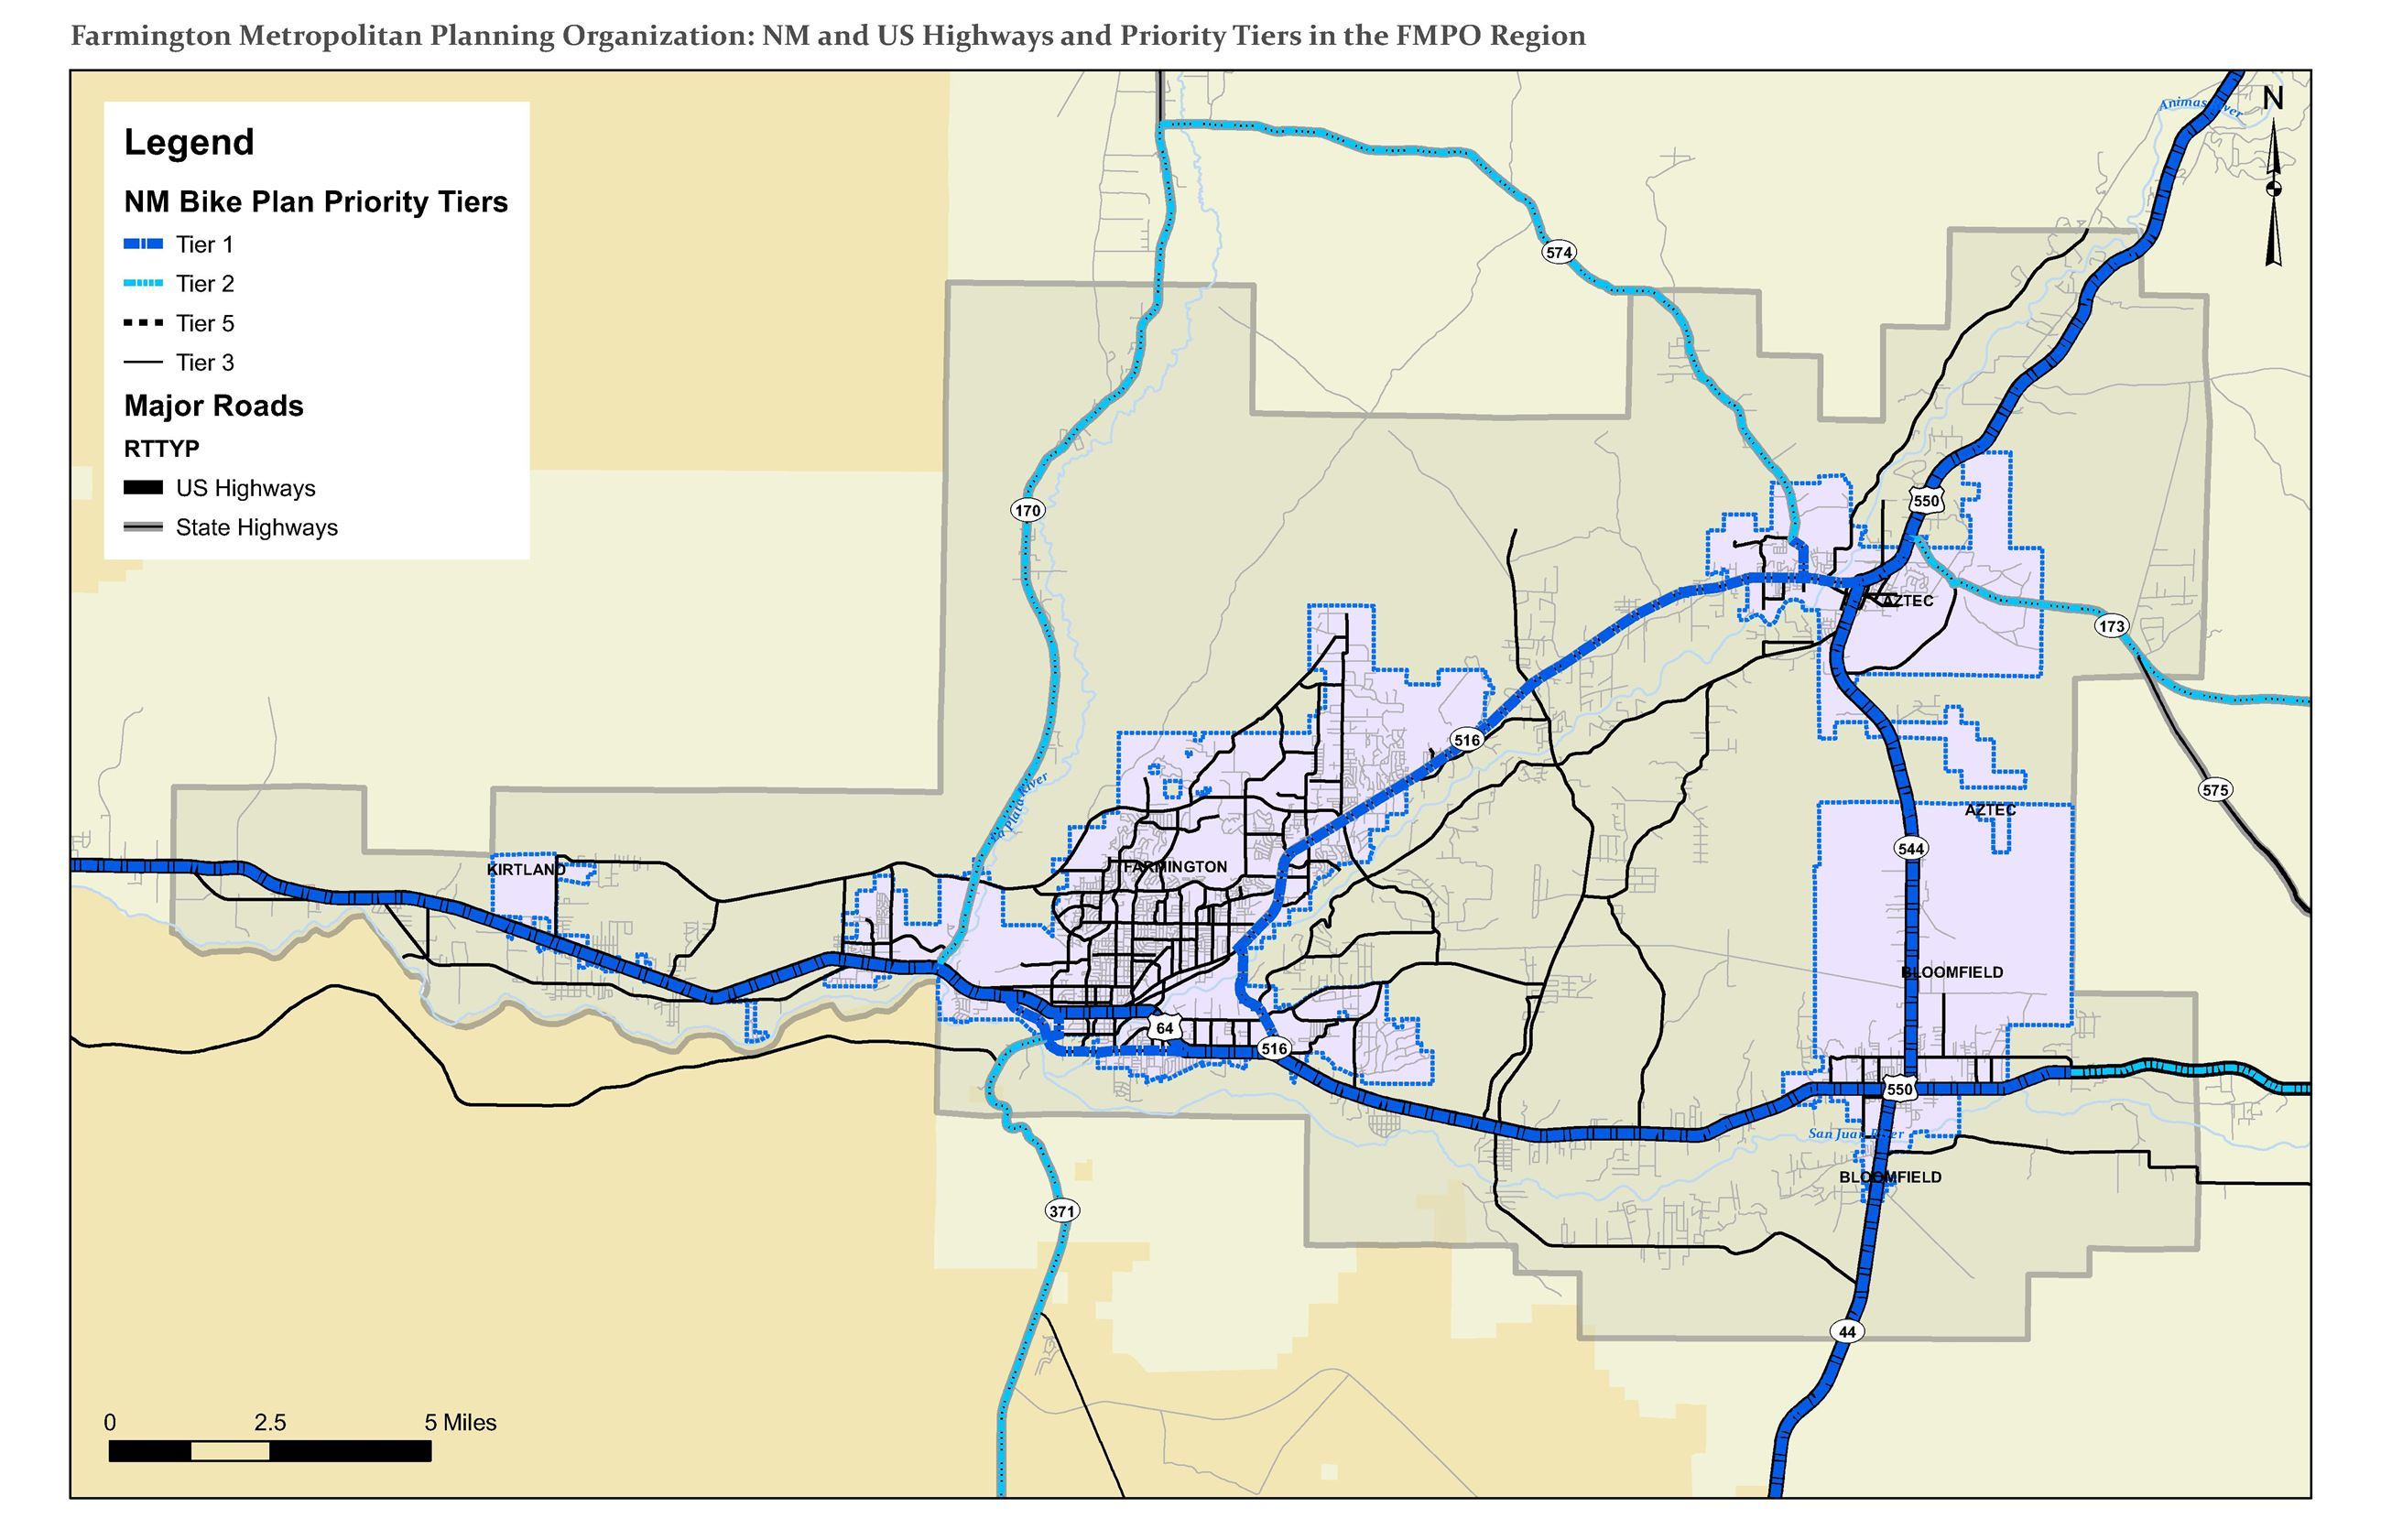 Map - NM Bike Plan Priority Tiers Opens in new window